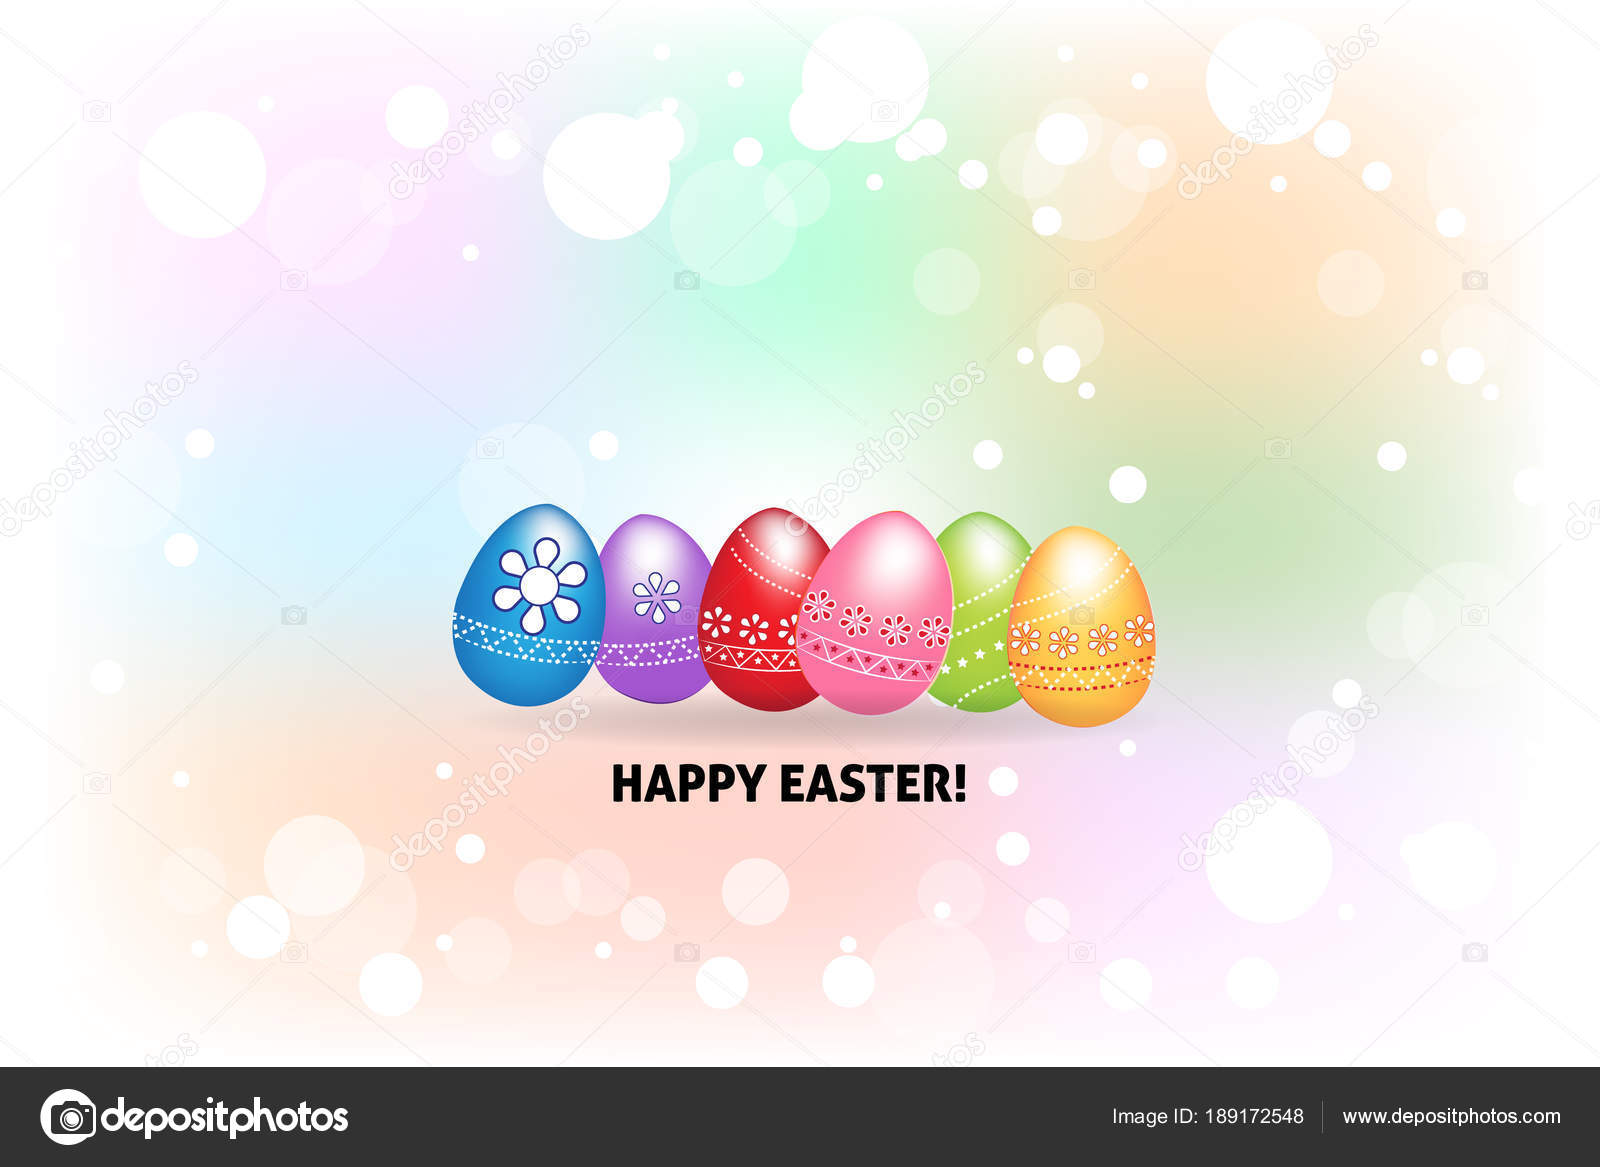 Happy Easter Greetings Card Eggs Colorful Icon Logo Watercolor